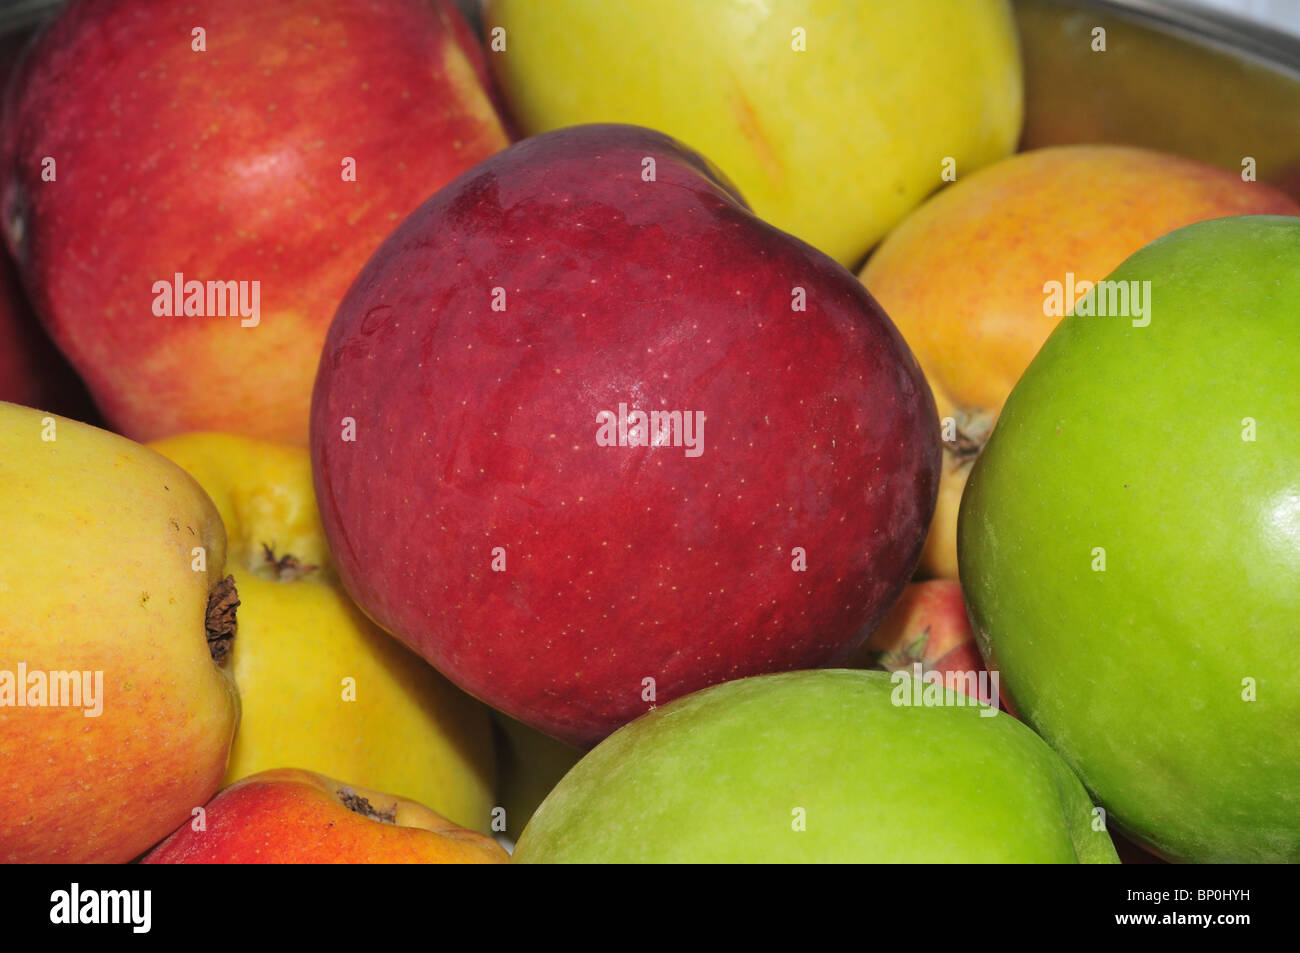 A bowl of red and green apples - Stock Image